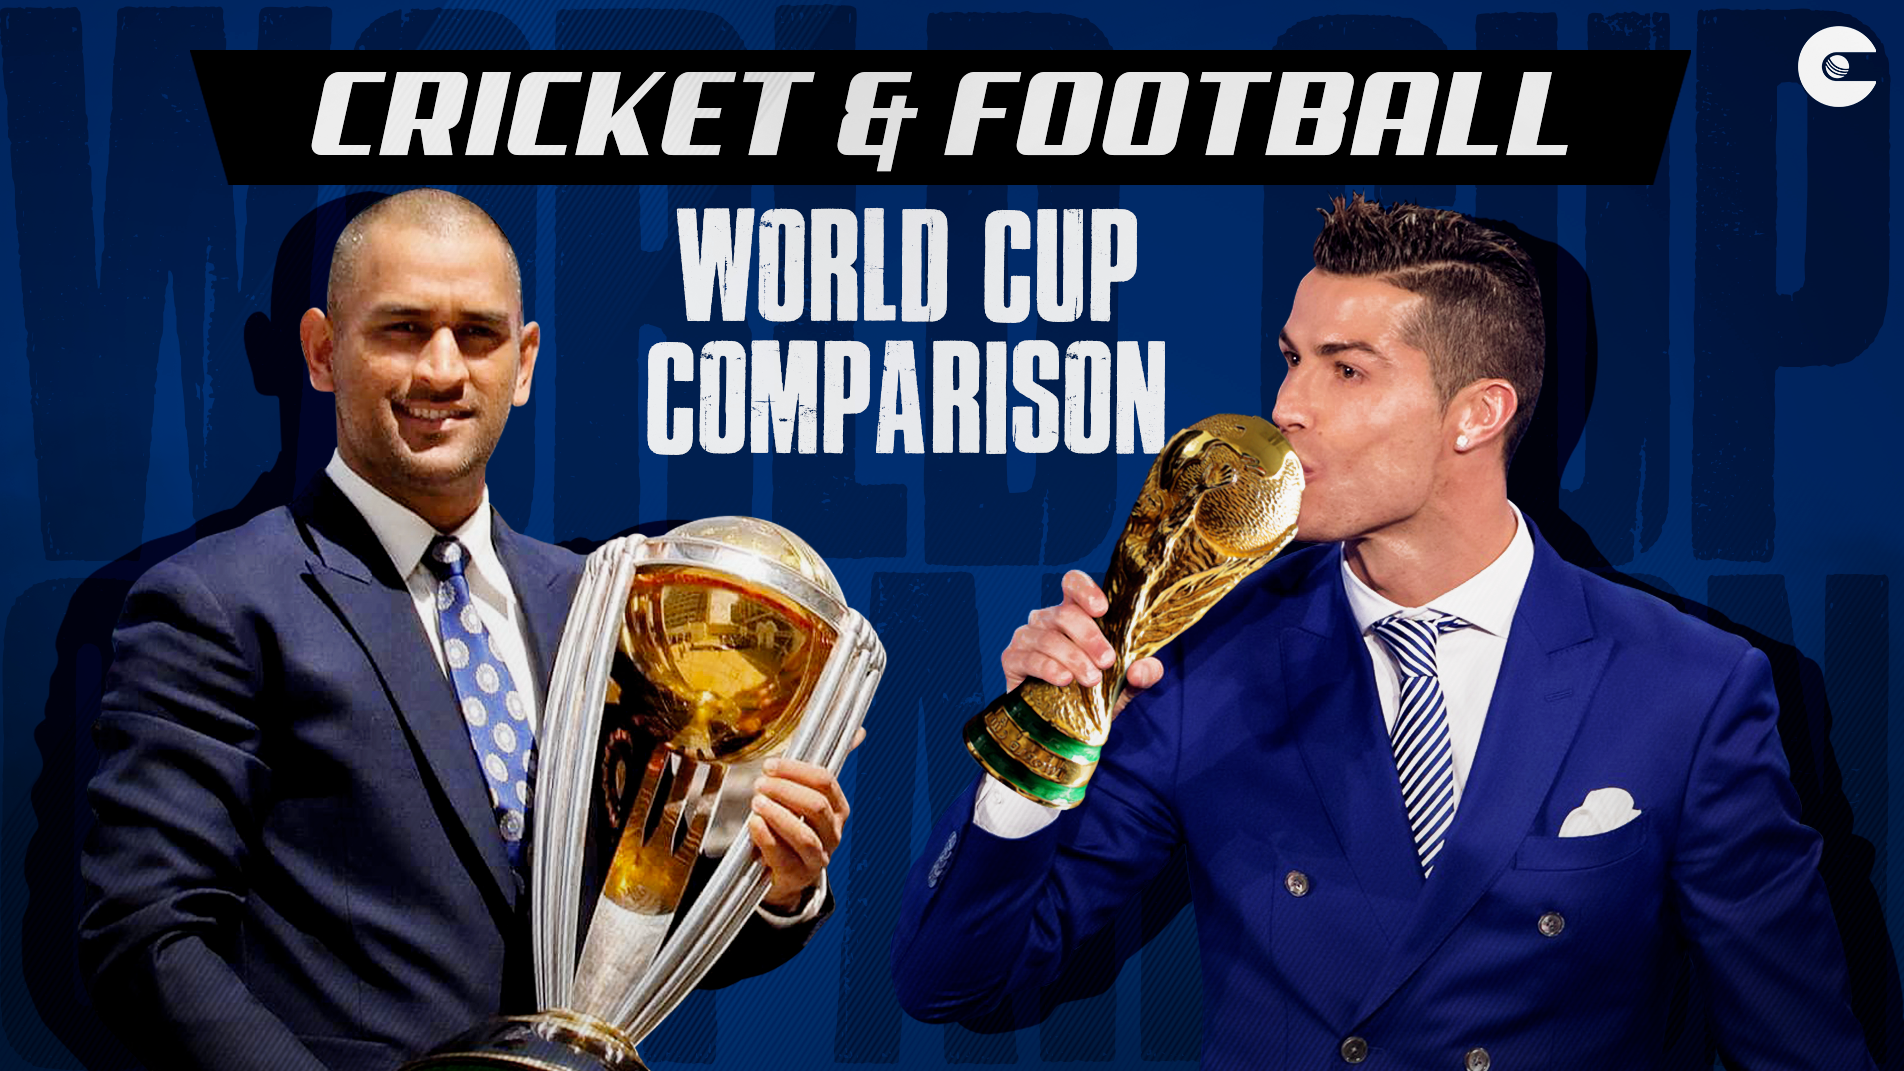 Reasons why Football World Cup beats Cricket World Cup hand down when it comes to comparison